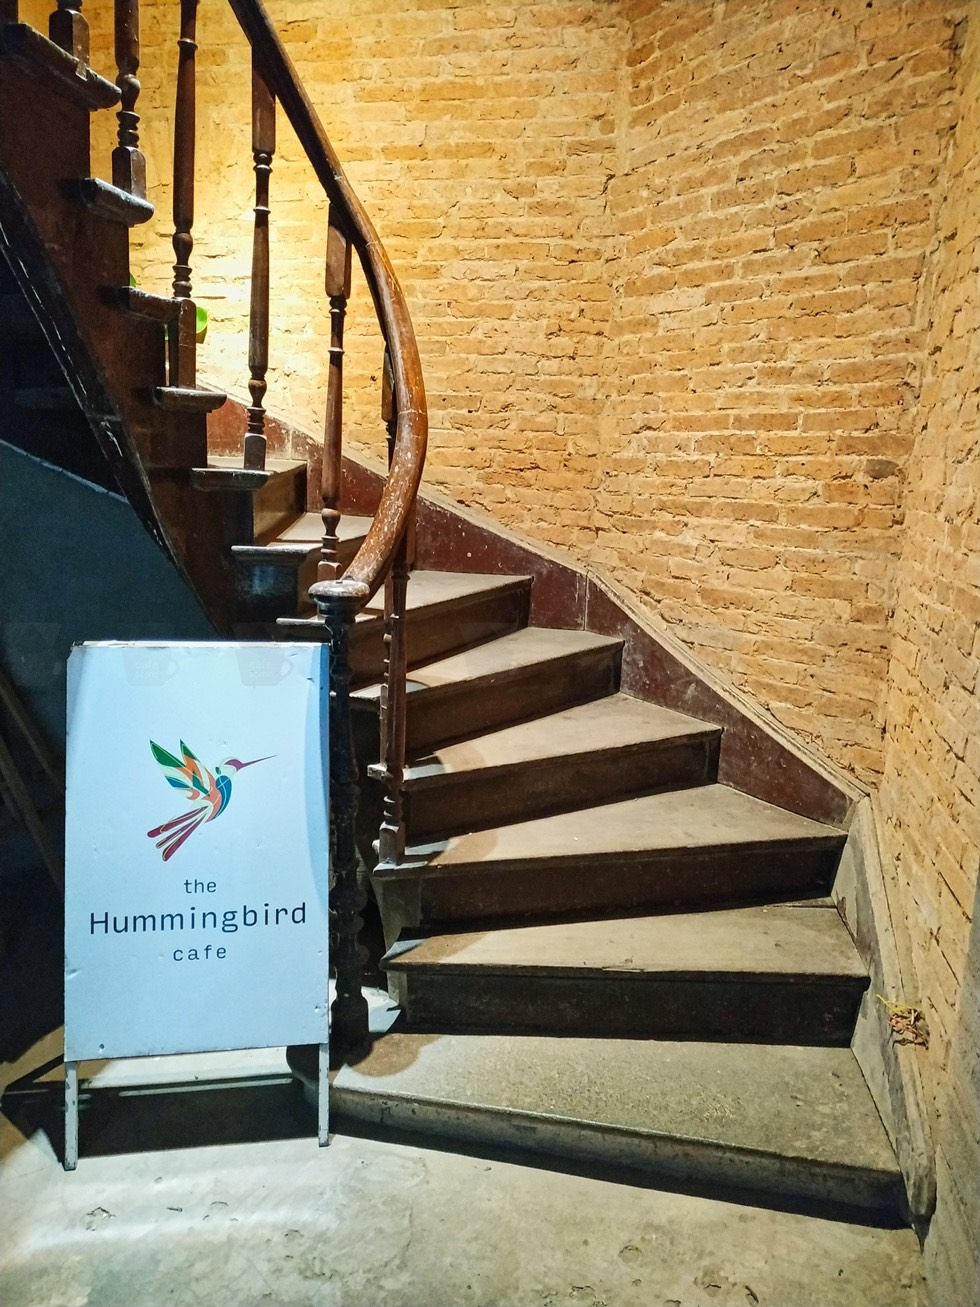 The Hummingbird Cafe Stairs